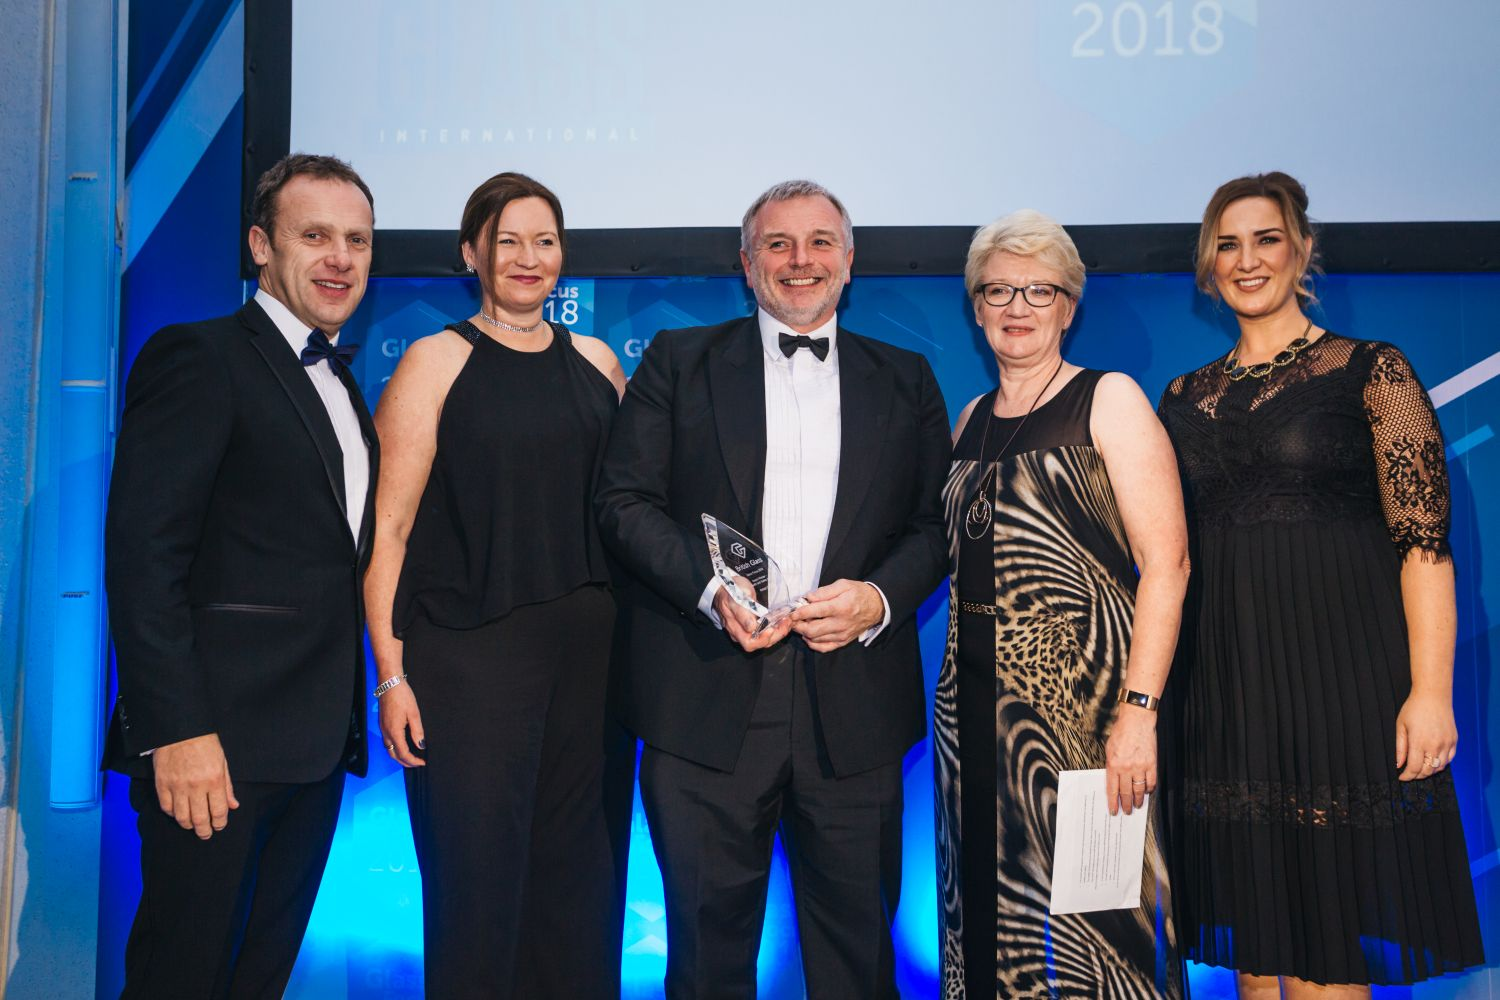 Health and Safety Action Winner Ardagh Group with Diane Julian and Leigh Hardie of Arco